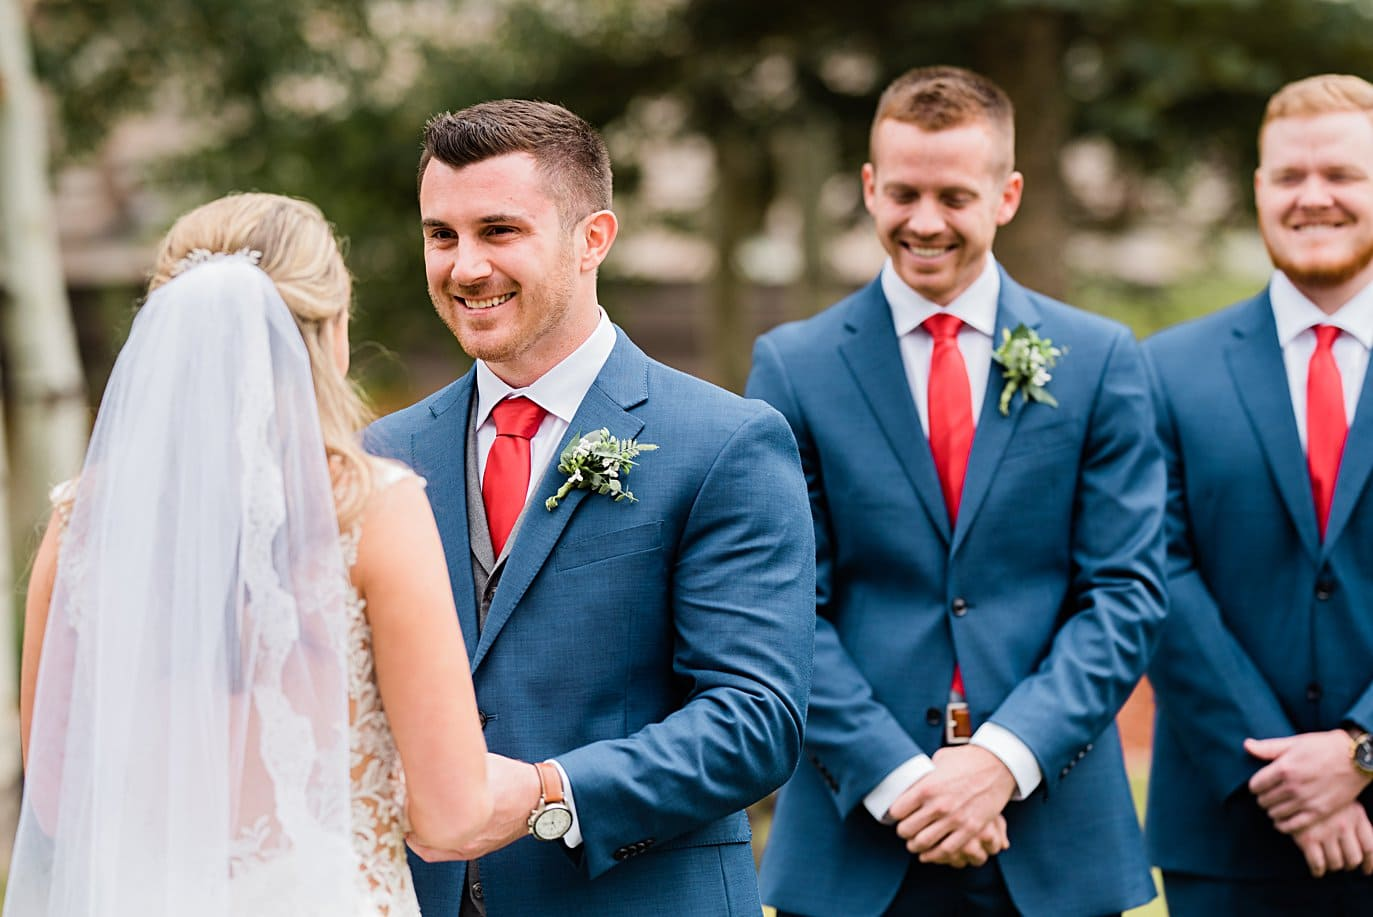 groom smiles at bride during outdoor mountain ceremony at Larkspur Vail Wedding by Lyons Wedding photographer Jennie Crate